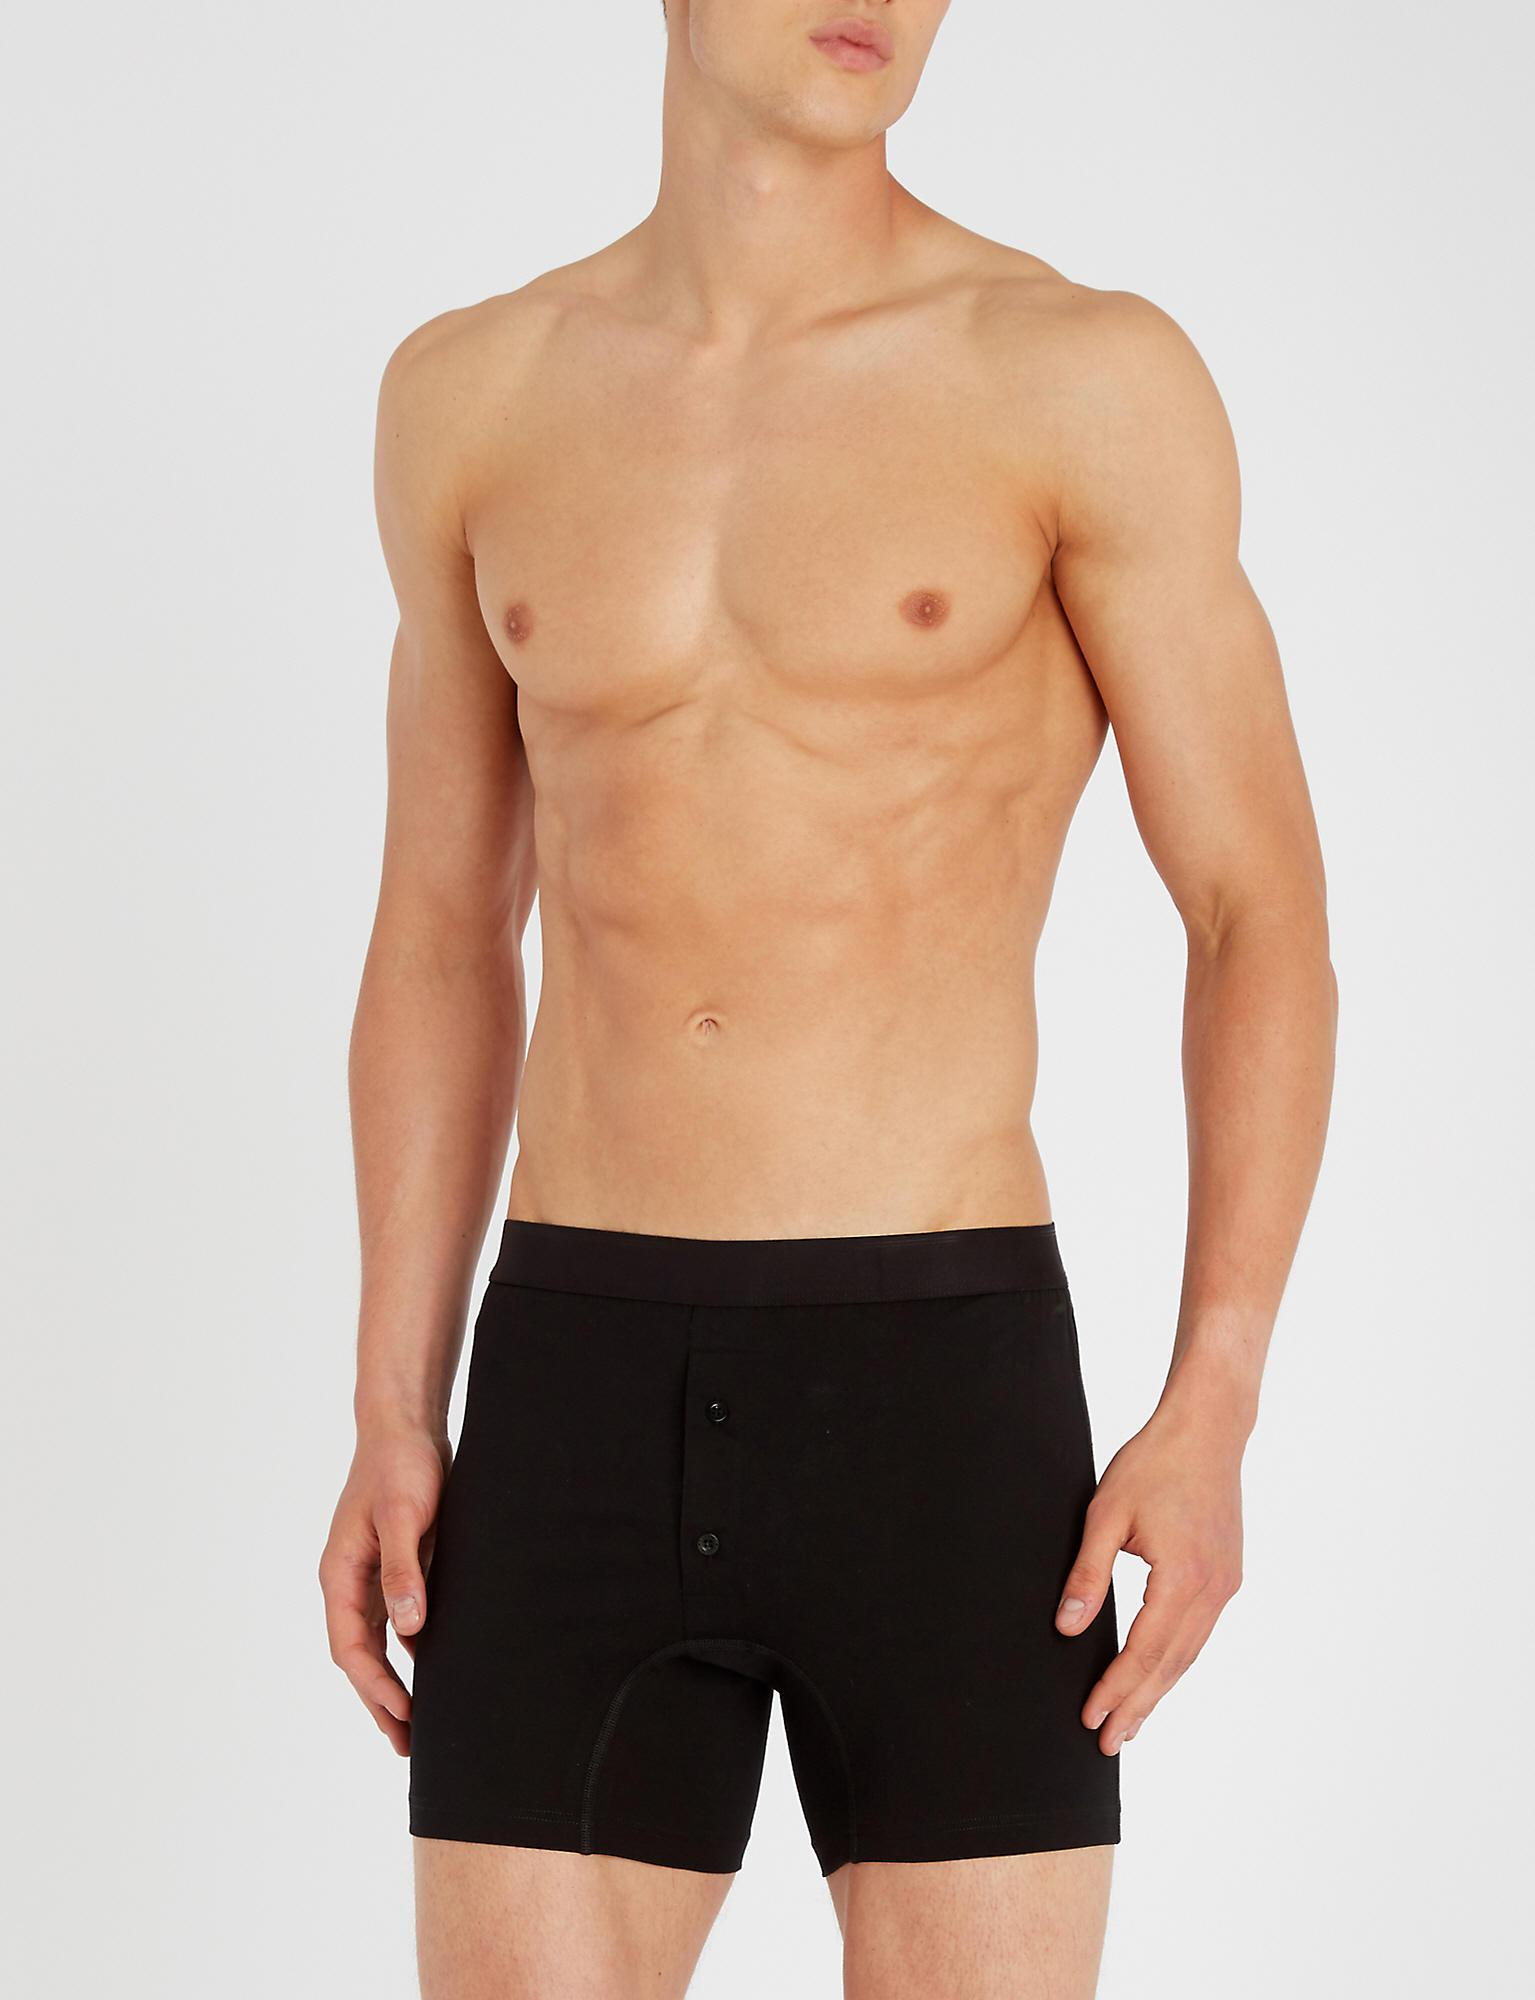 86a361f2c7ab Sunspel - Black Superfine Egyptian Cotton Two-button Boxer Shorts for Men -  Lyst. View fullscreen